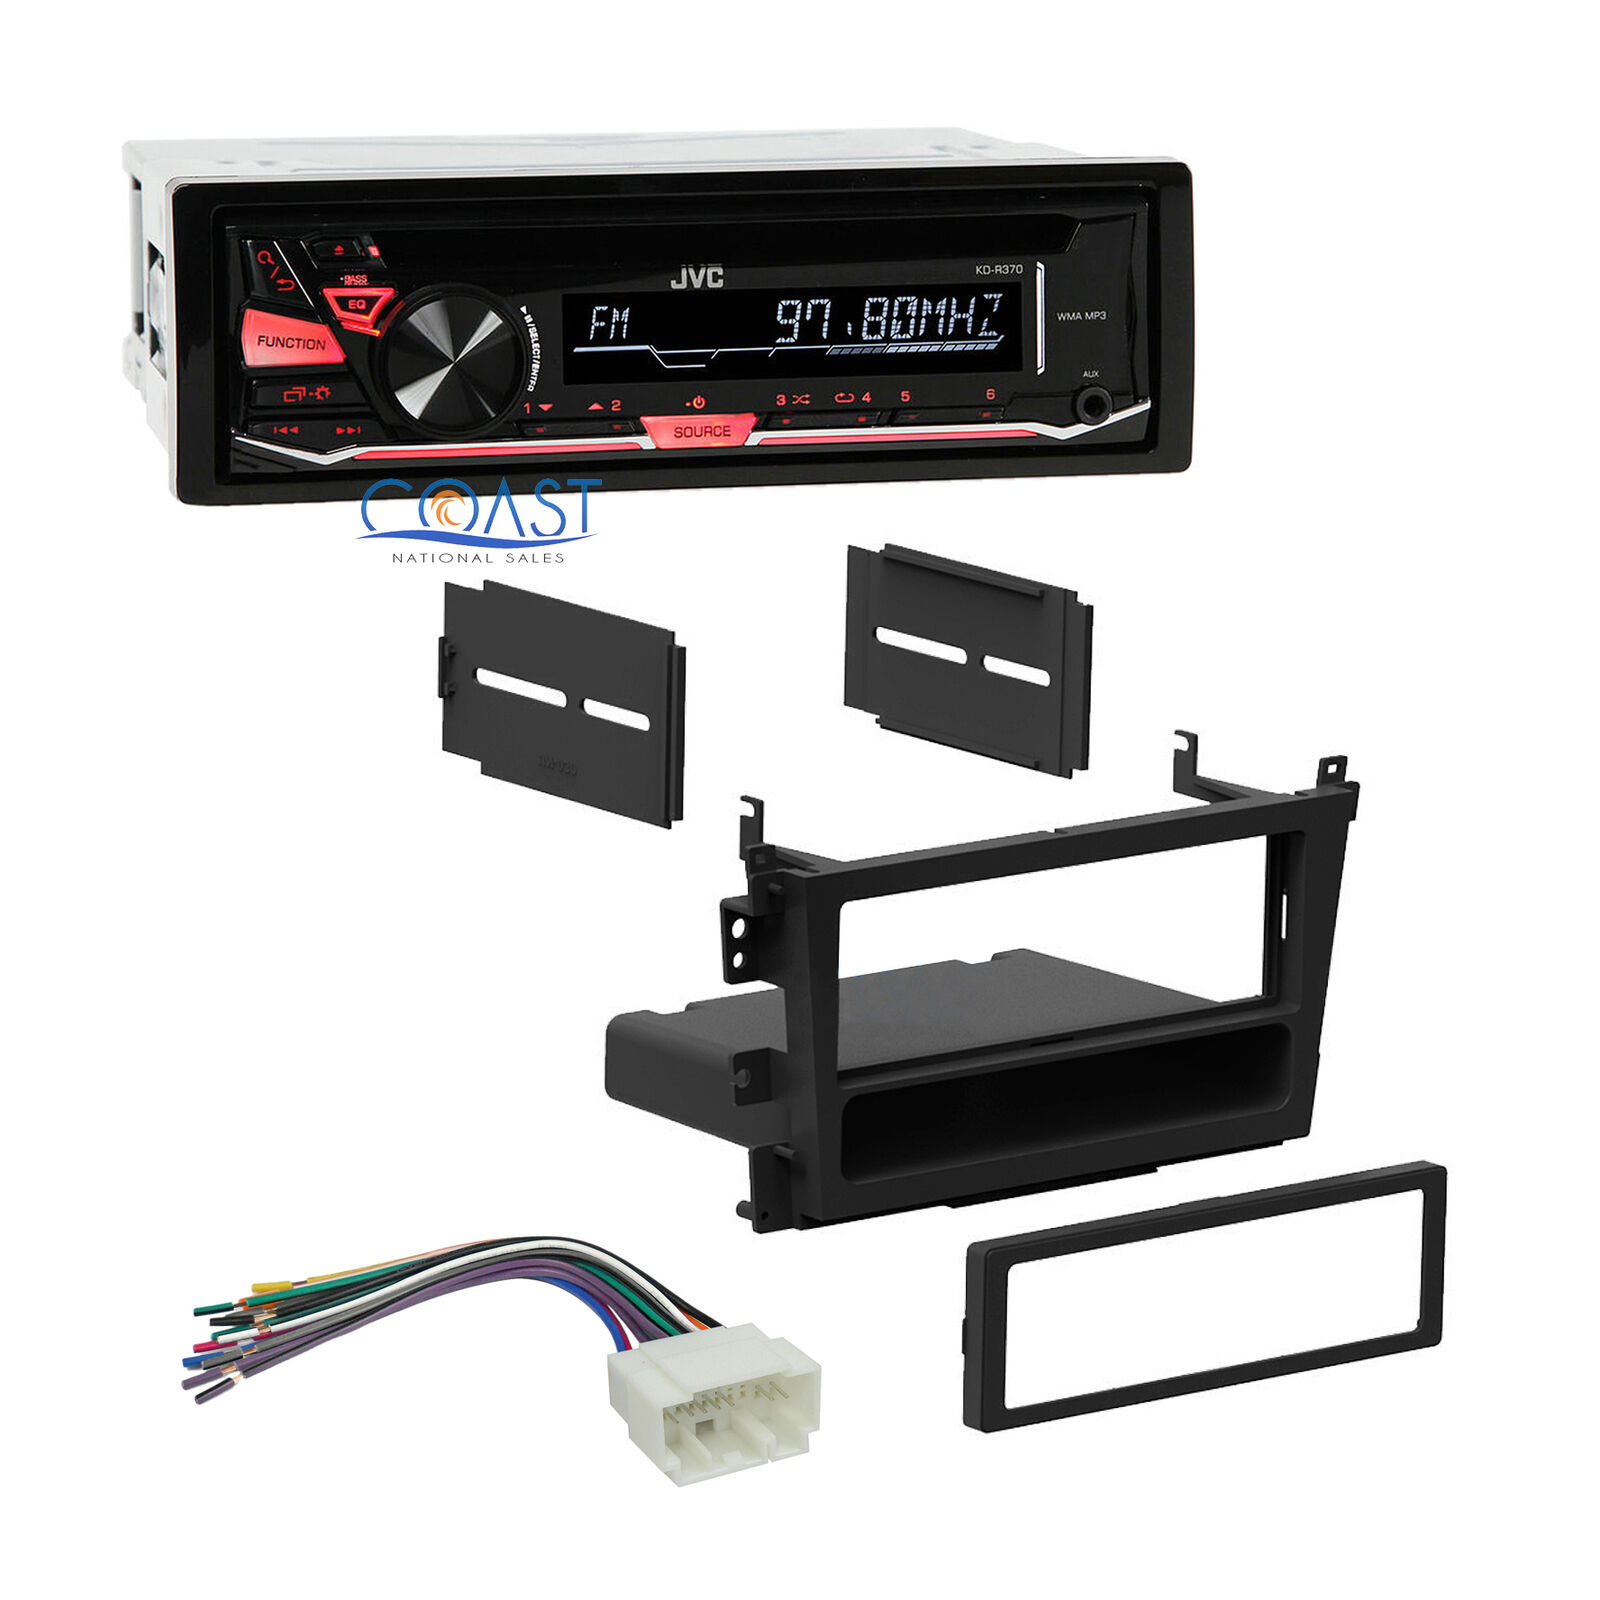 Jvc Car Radio Stereo Single Din Dash Kit Wire Harness For 1999 2003 Wiring 1 Of 5free Shipping